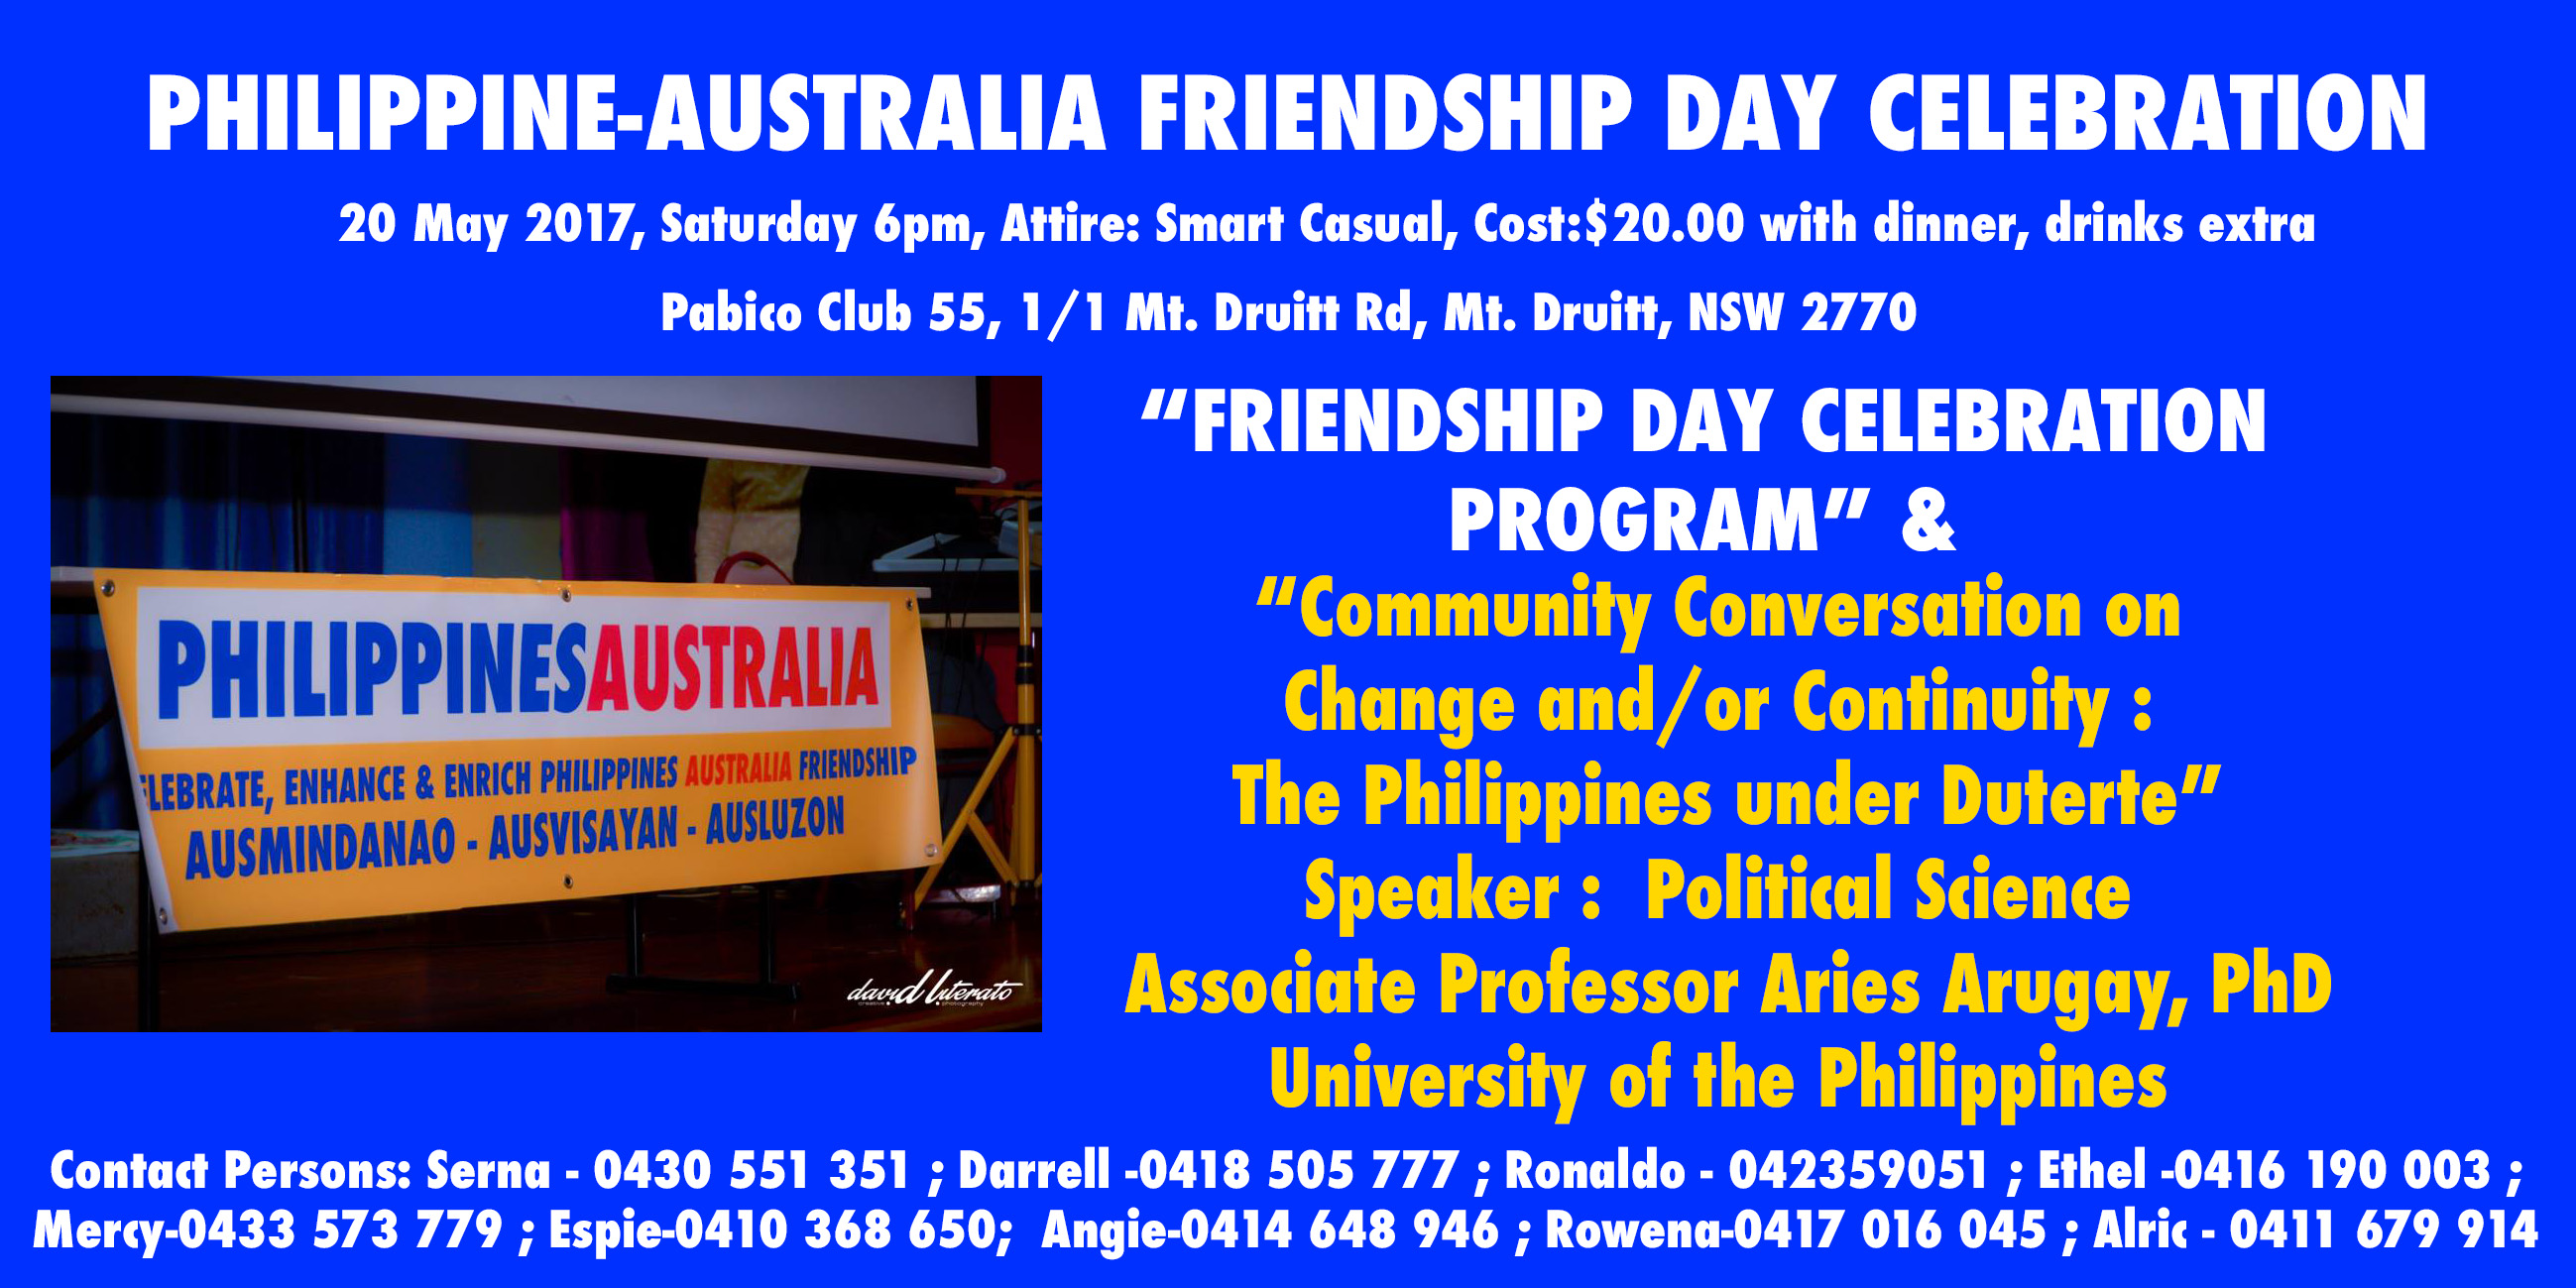 Philippines Australia Friendship Day 2017 on May 20